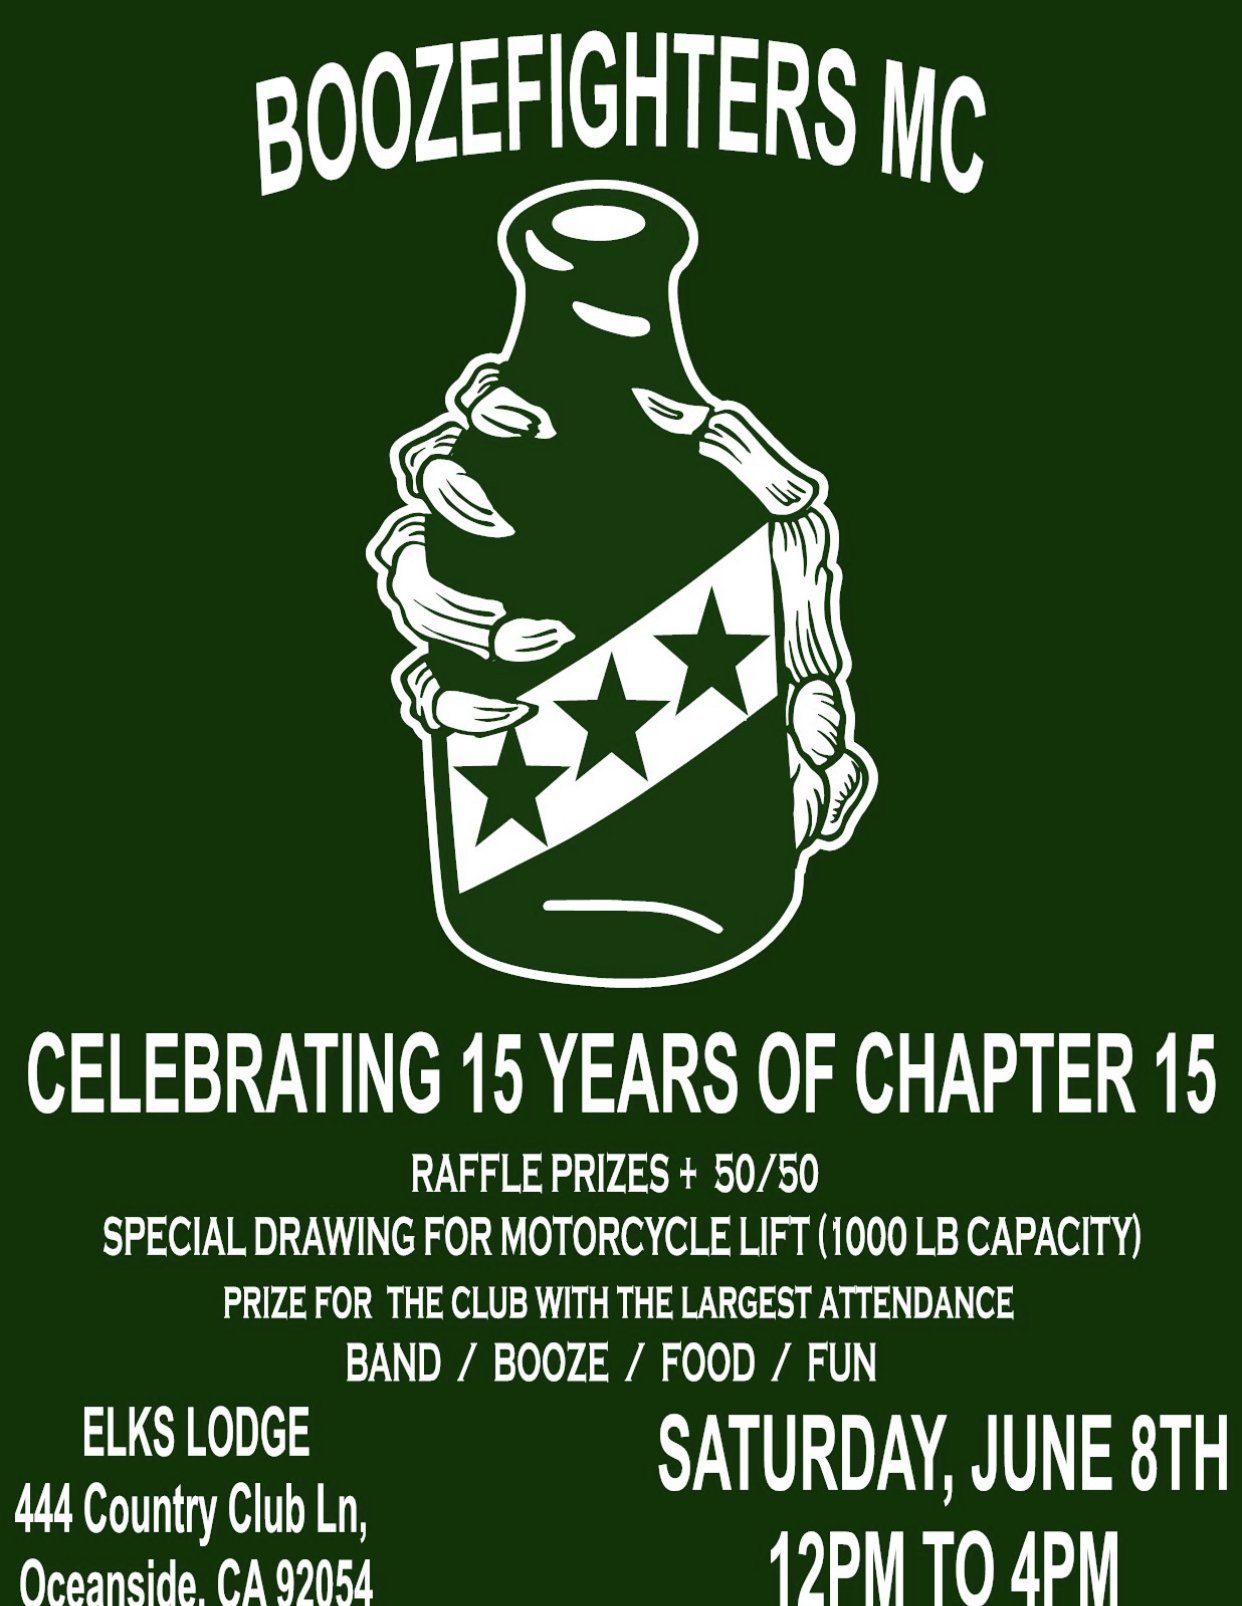 Boozefighters MC 15th Anniversary party Chapter 15